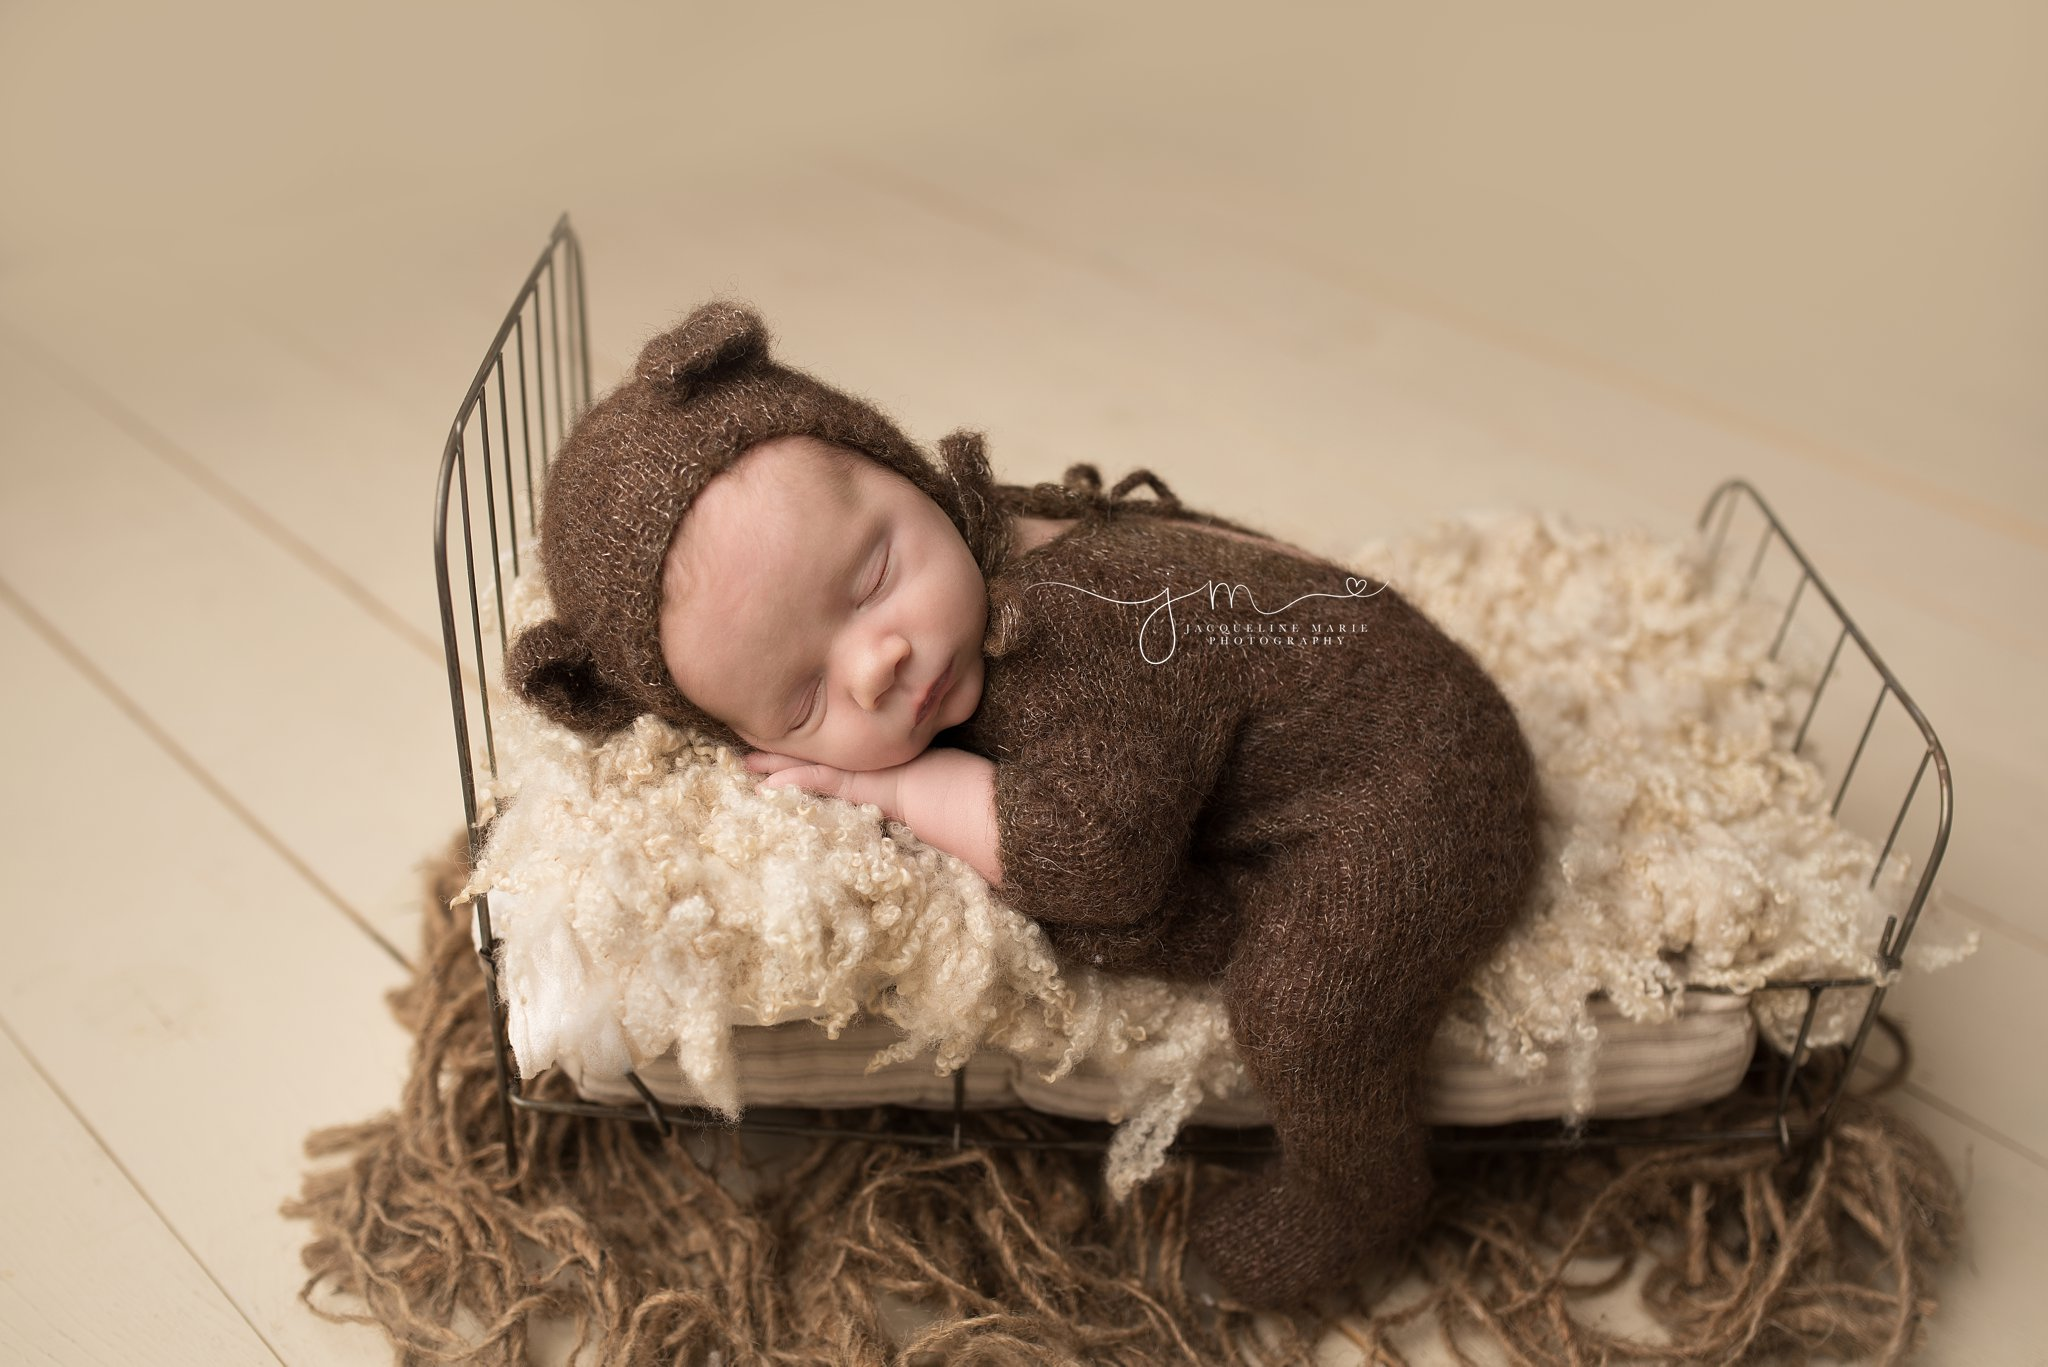 newborn baby wears teddy bear bonnet for newborn photography session in columbus ohio